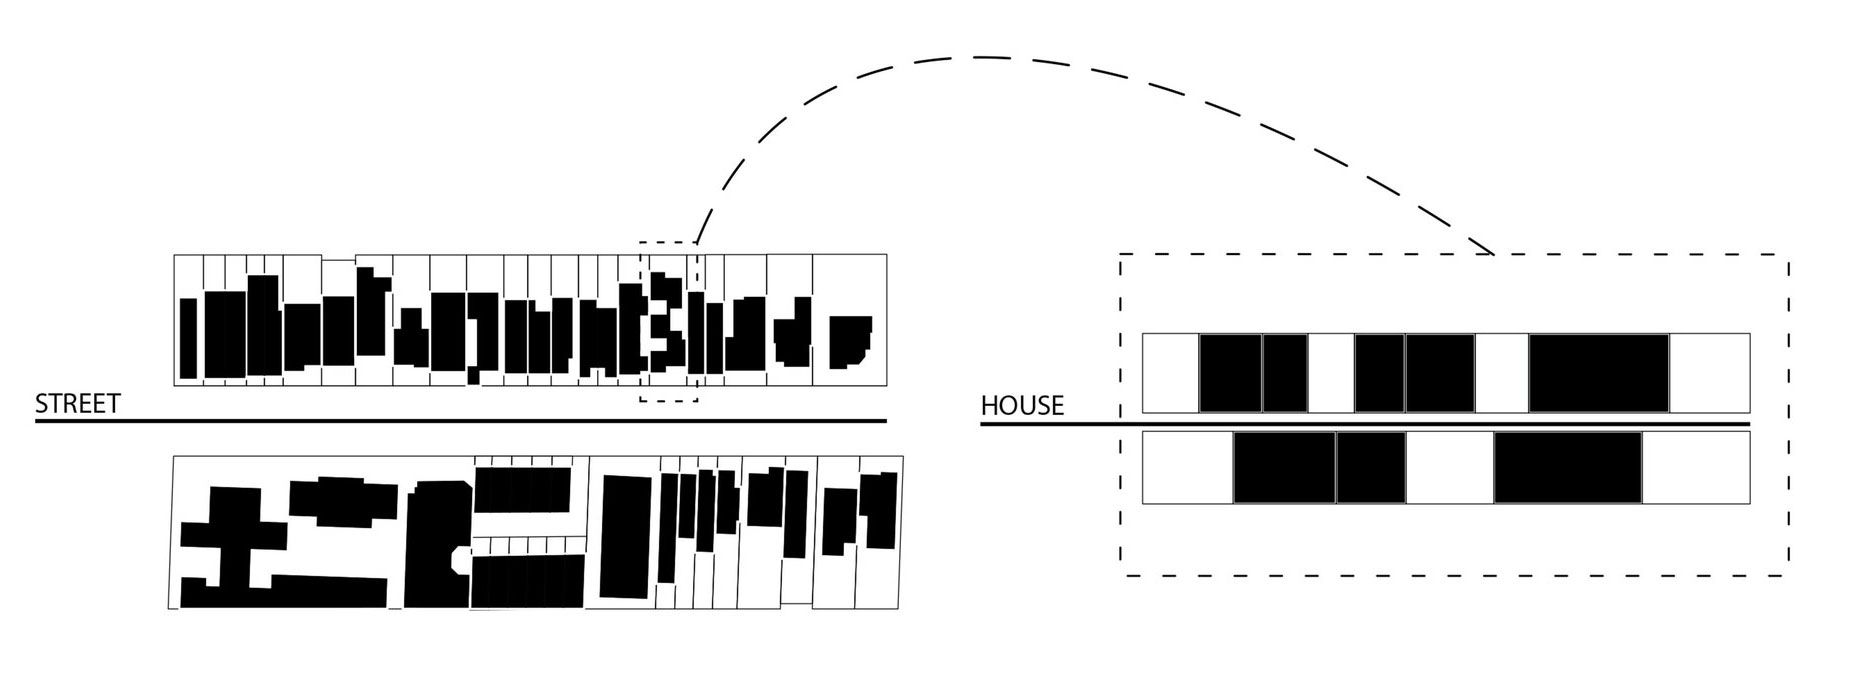 House-in-House-21